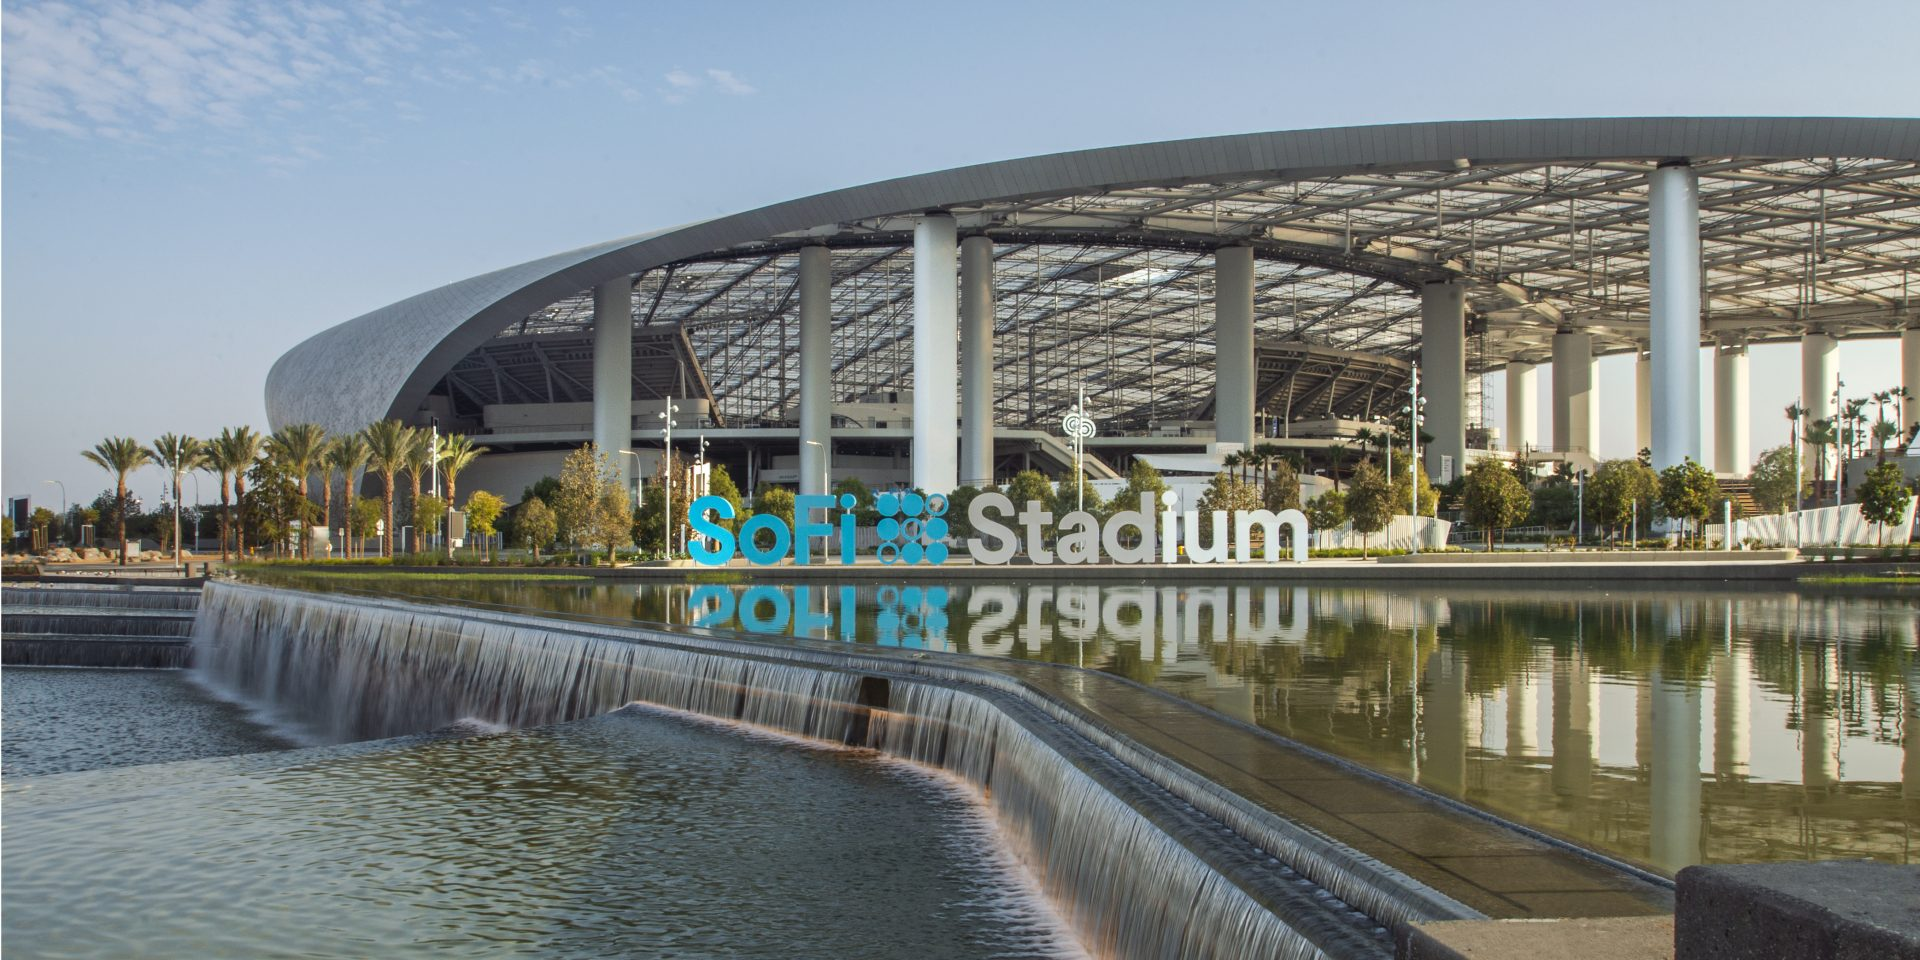 SoFi Stadium: Elegant Solution